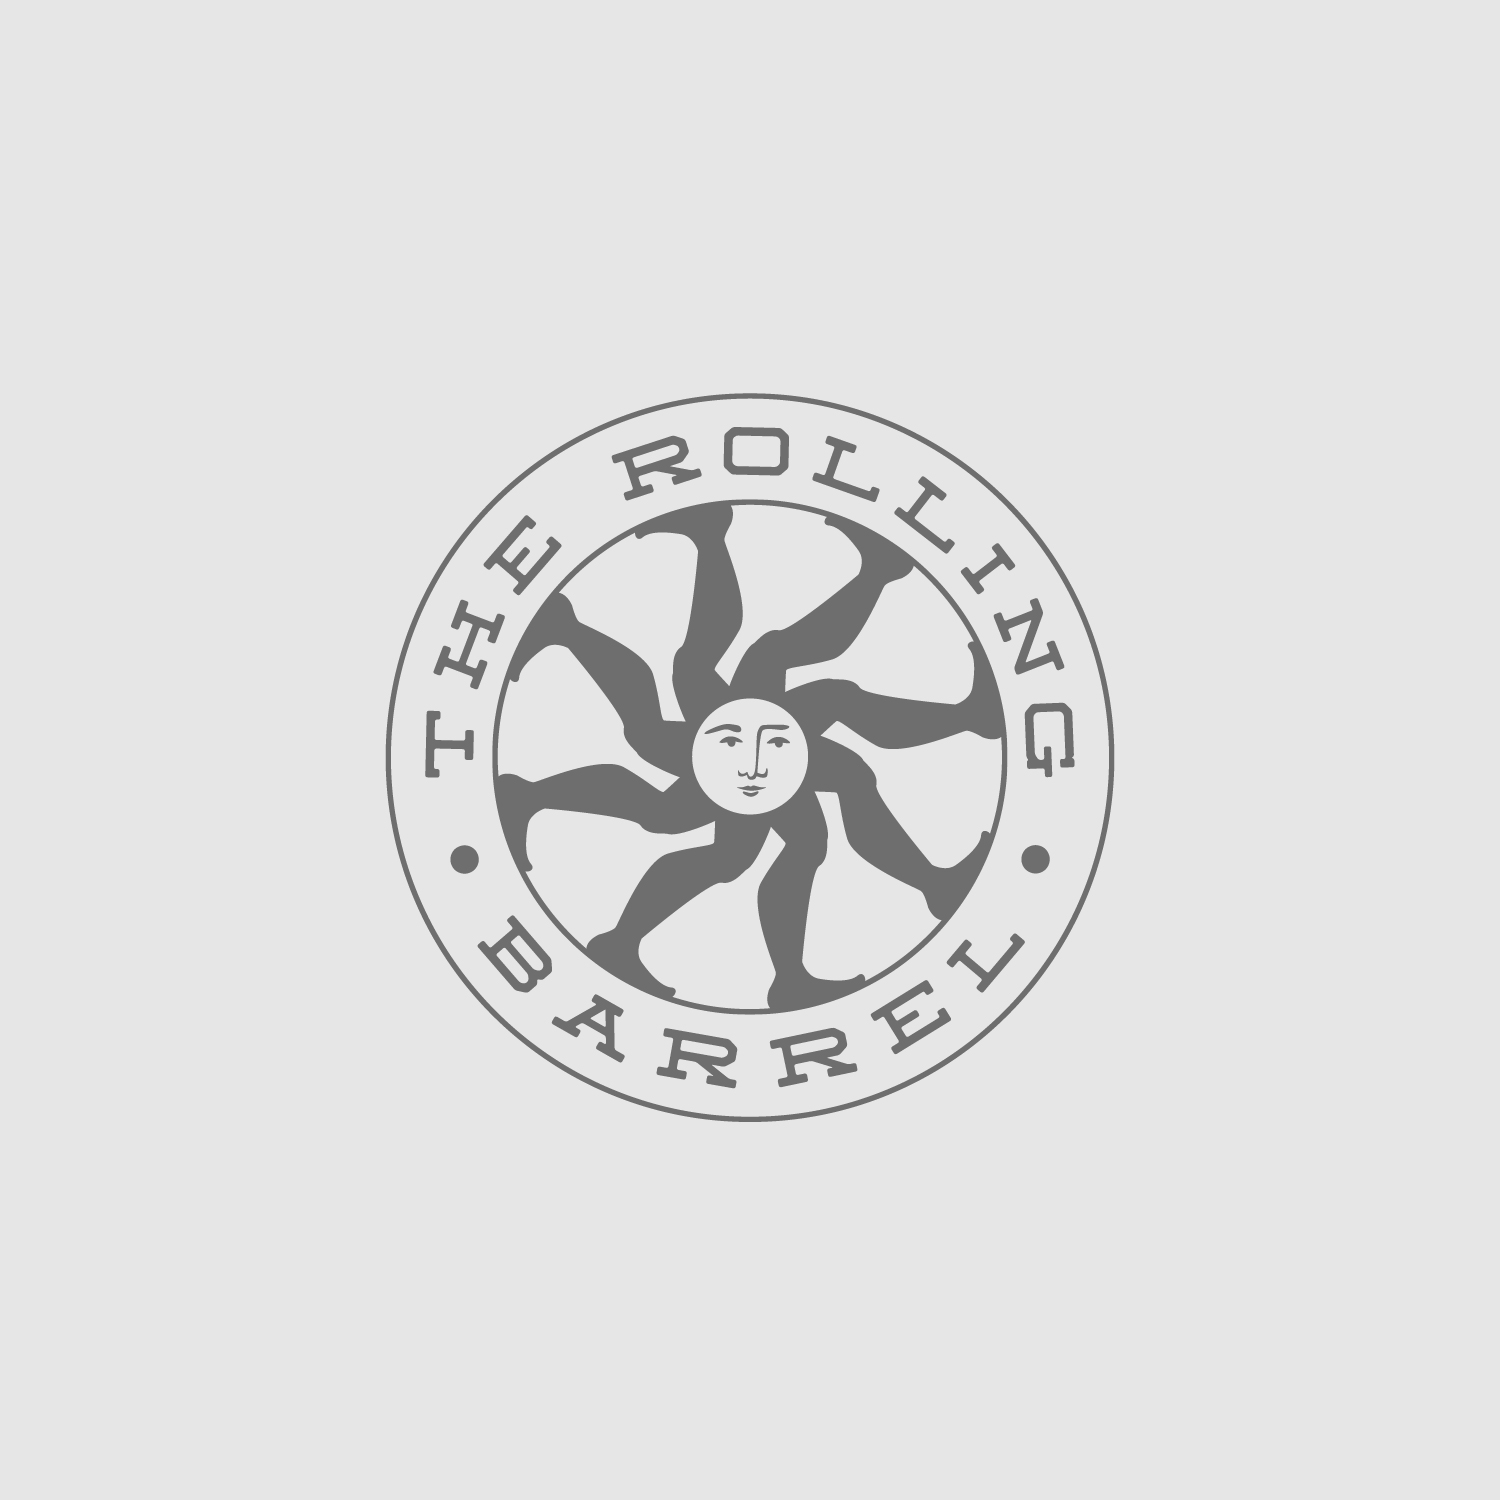 Simeon-Goa_Victoria-Canada_Graphic-Logo-Design_The-Rolling-Barrel.jpg